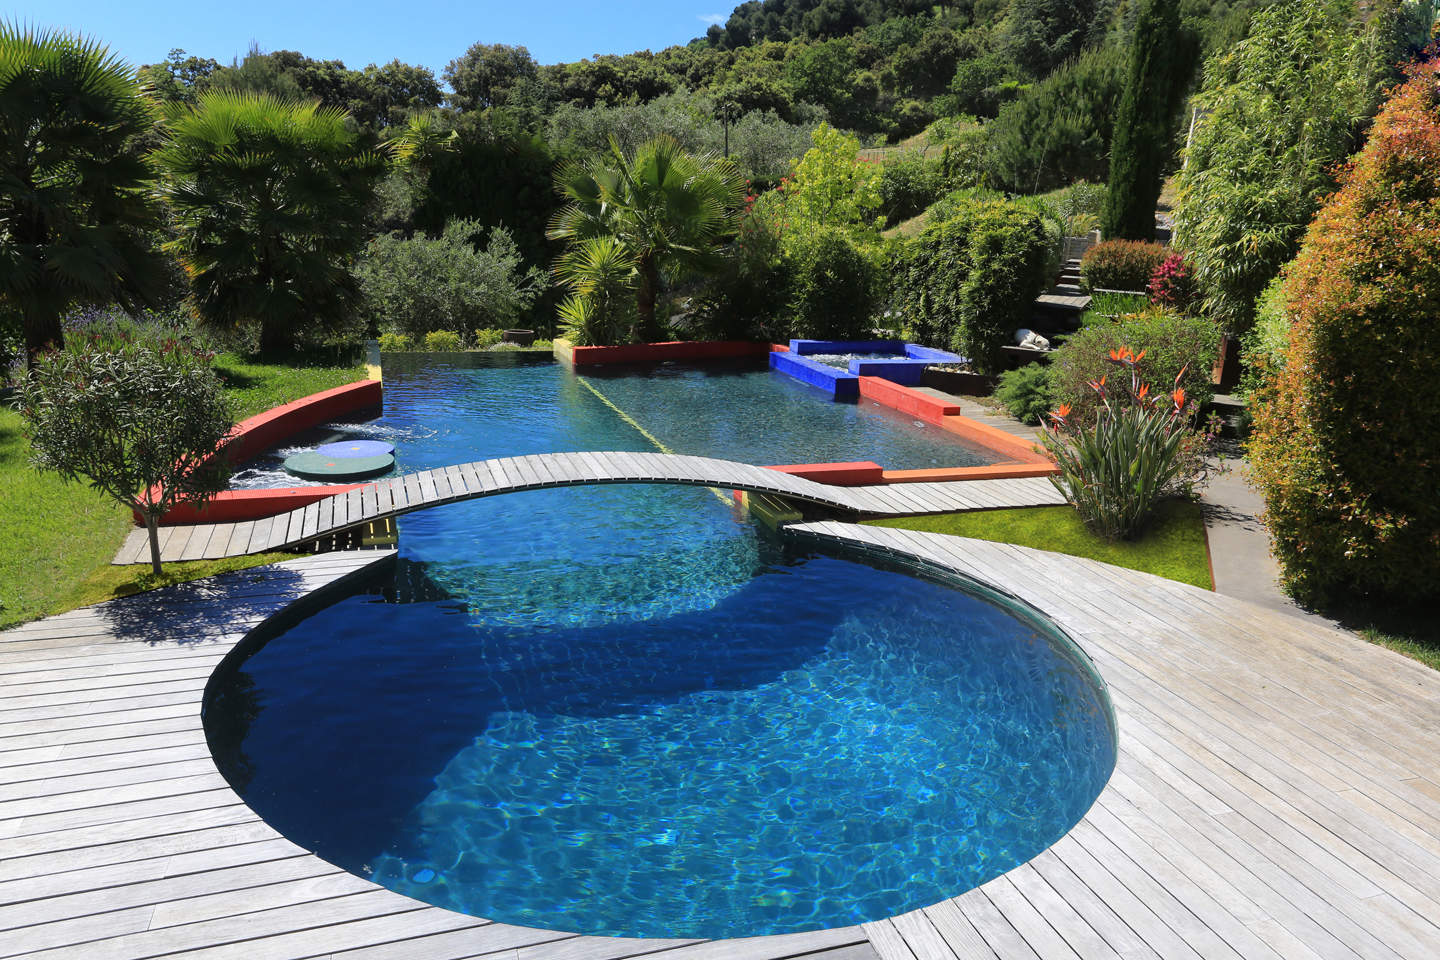 Piscine contemporaine Diffazur